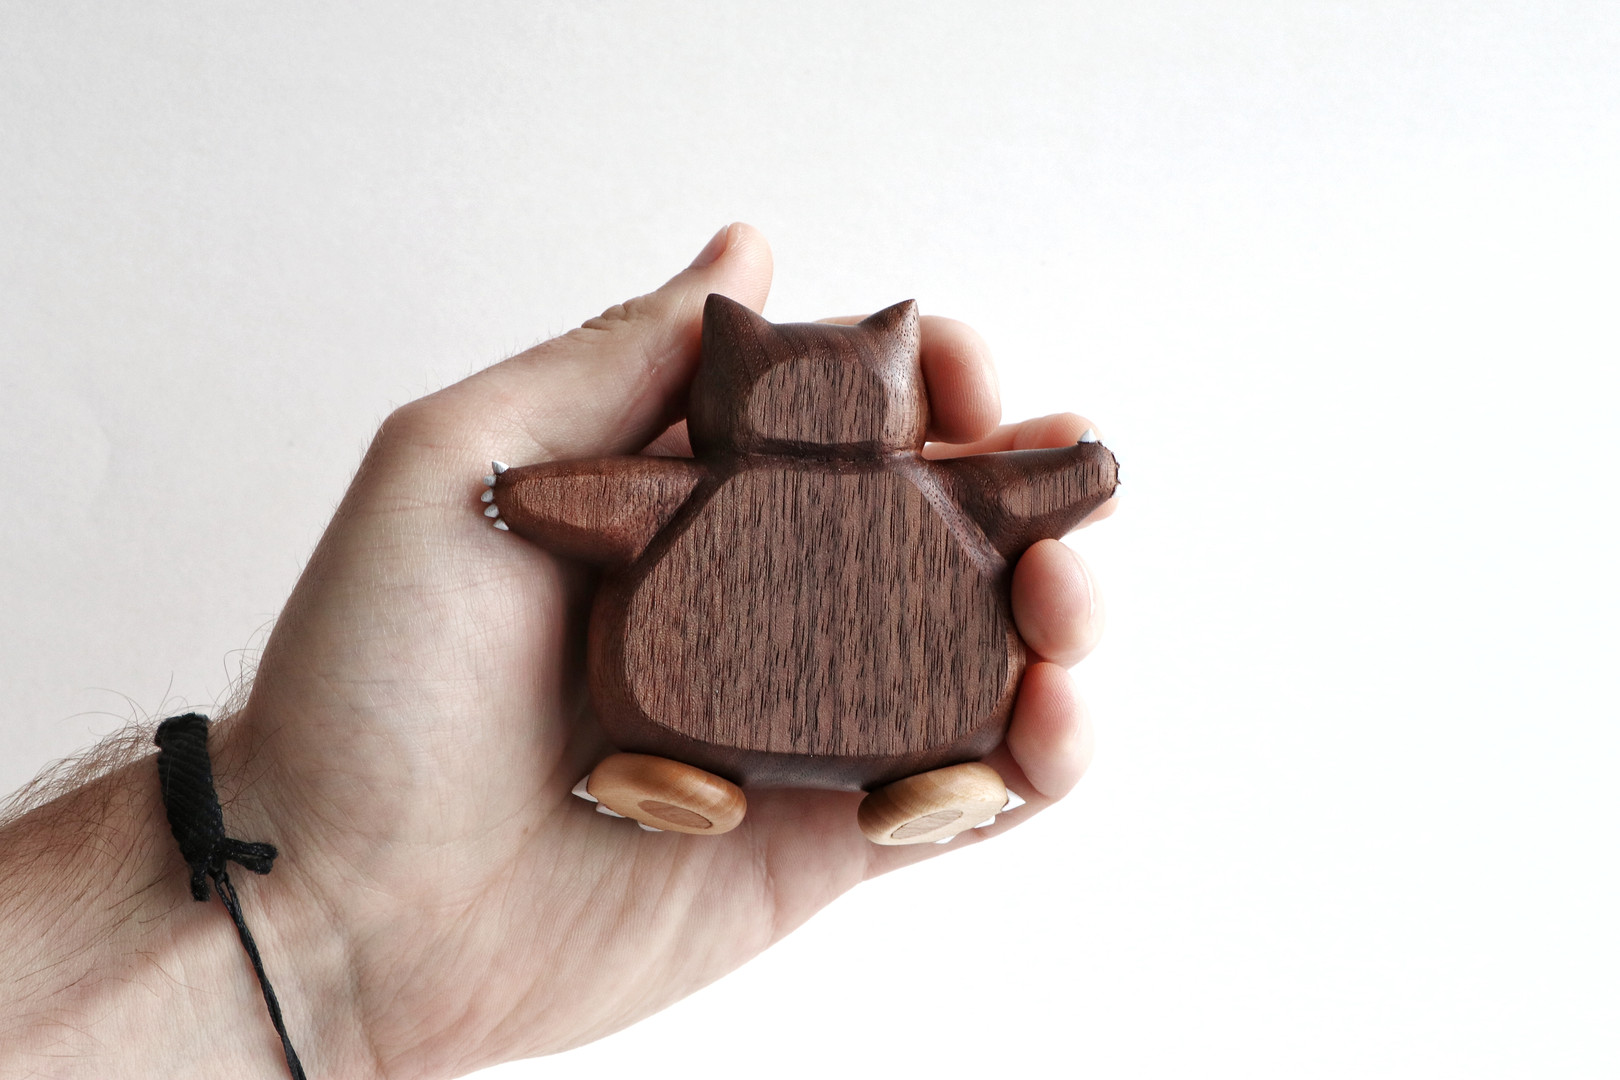 Snorlax wood carving wooden pokemon hand carved figure